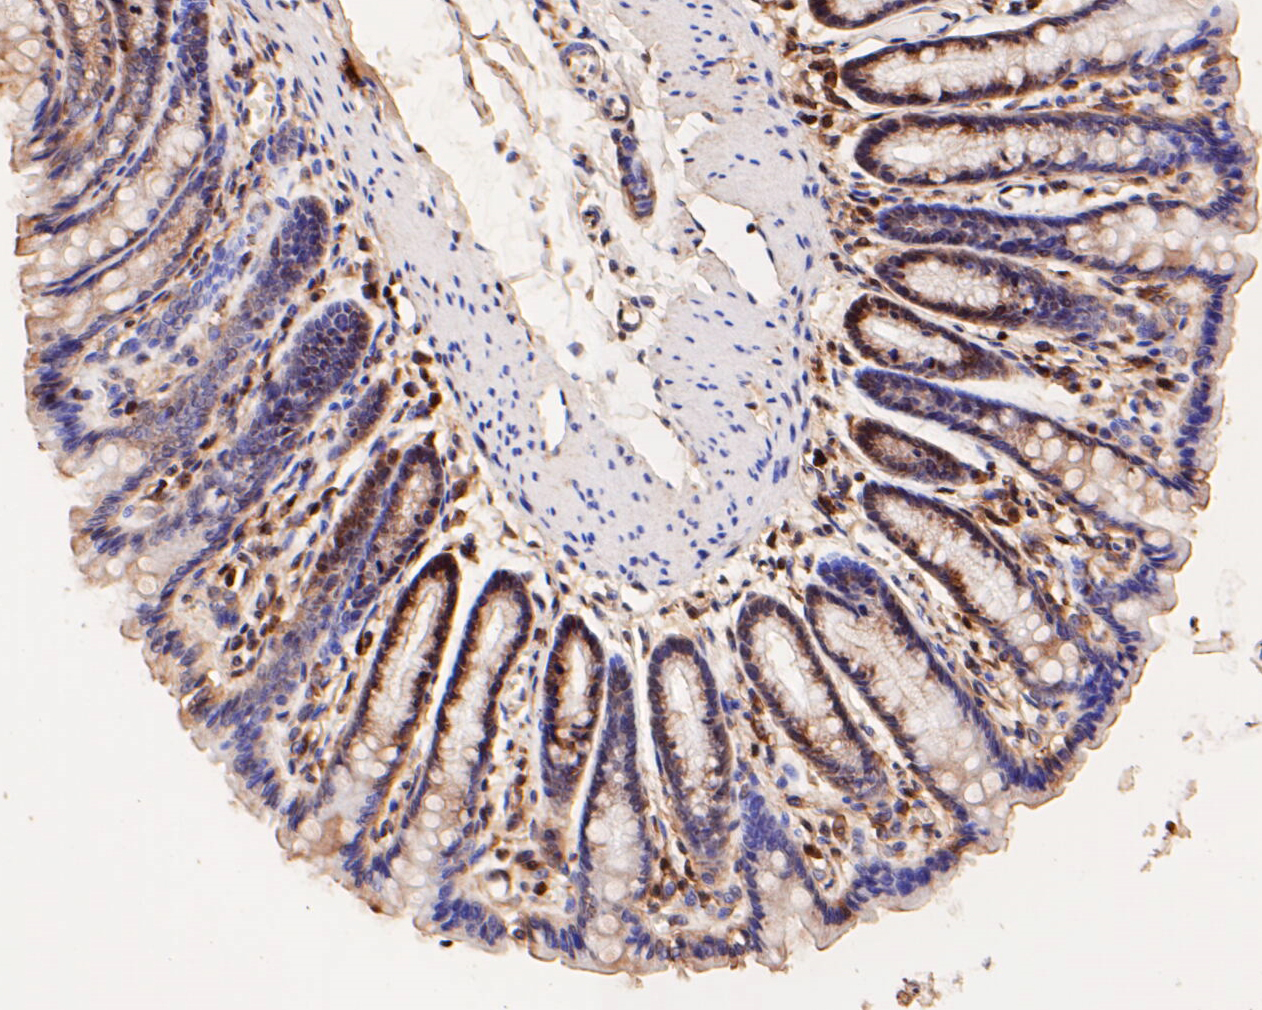 Immunohistochemical analysis of paraffin-embedded rat large intestine tissue using anti-GATA3 antibody. The section was pre-treated using heat mediated antigen retrieval with Tris-EDTA buffer (pH 8.0-8.4) for 20 minutes.The tissues were blocked in 5% BSA for 30 minutes at room temperature, washed with ddH2O and PBS, and then probed with the primary antibody (ER1902-69, 1/50) for 30 minutes at room temperature. The detection was performed using an HRP conjugated compact polymer system. DAB was used as the chromogen. Tissues were counterstained with hematoxylin and mounted with DPX.